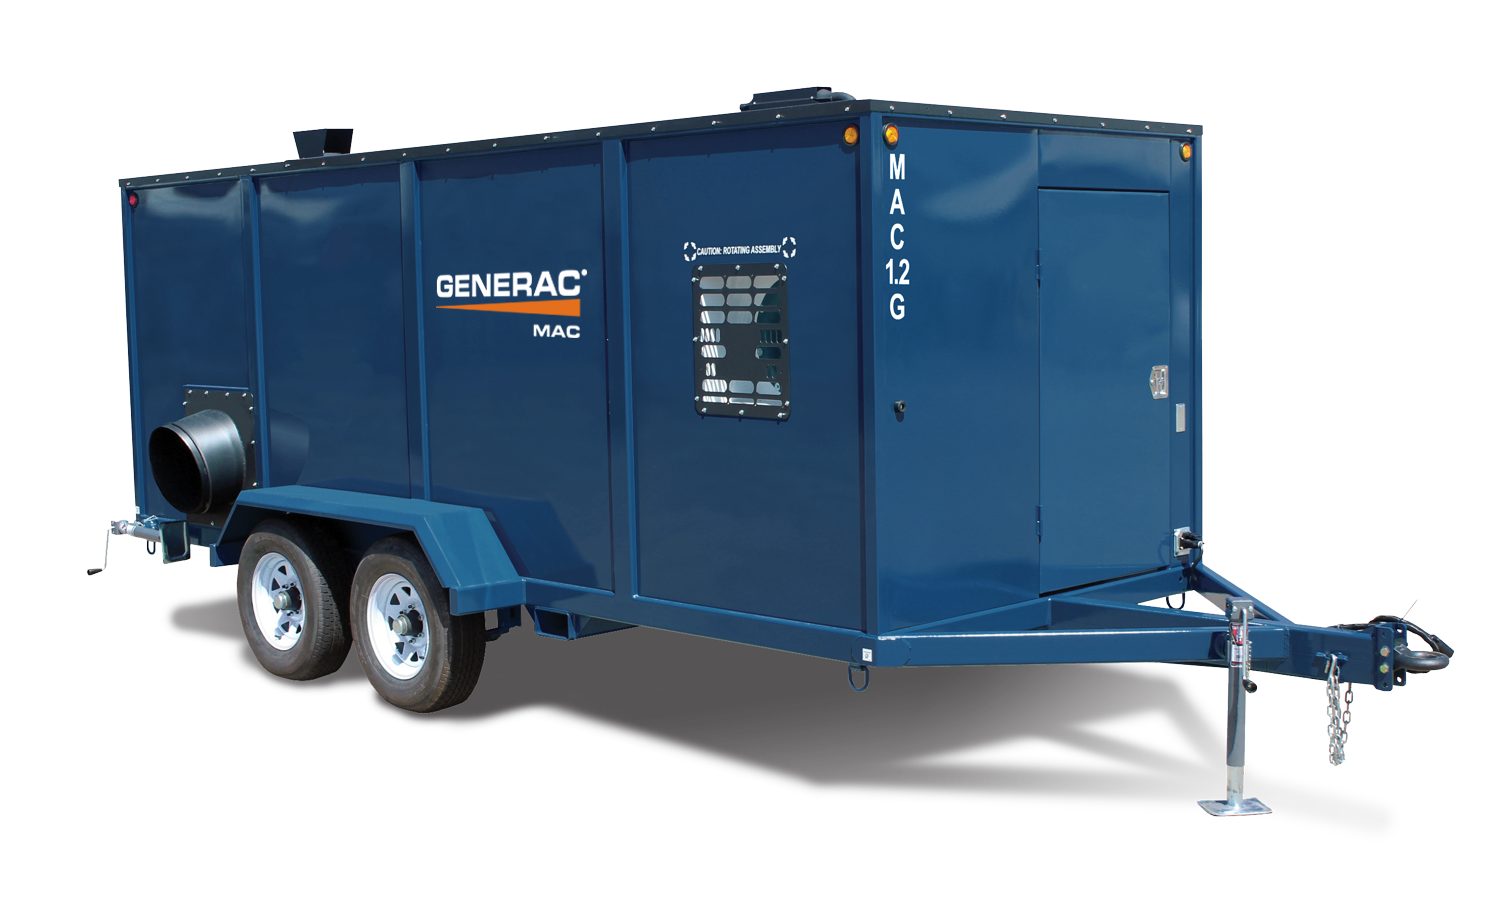 generac mac1.2g mobile indirect fired heater